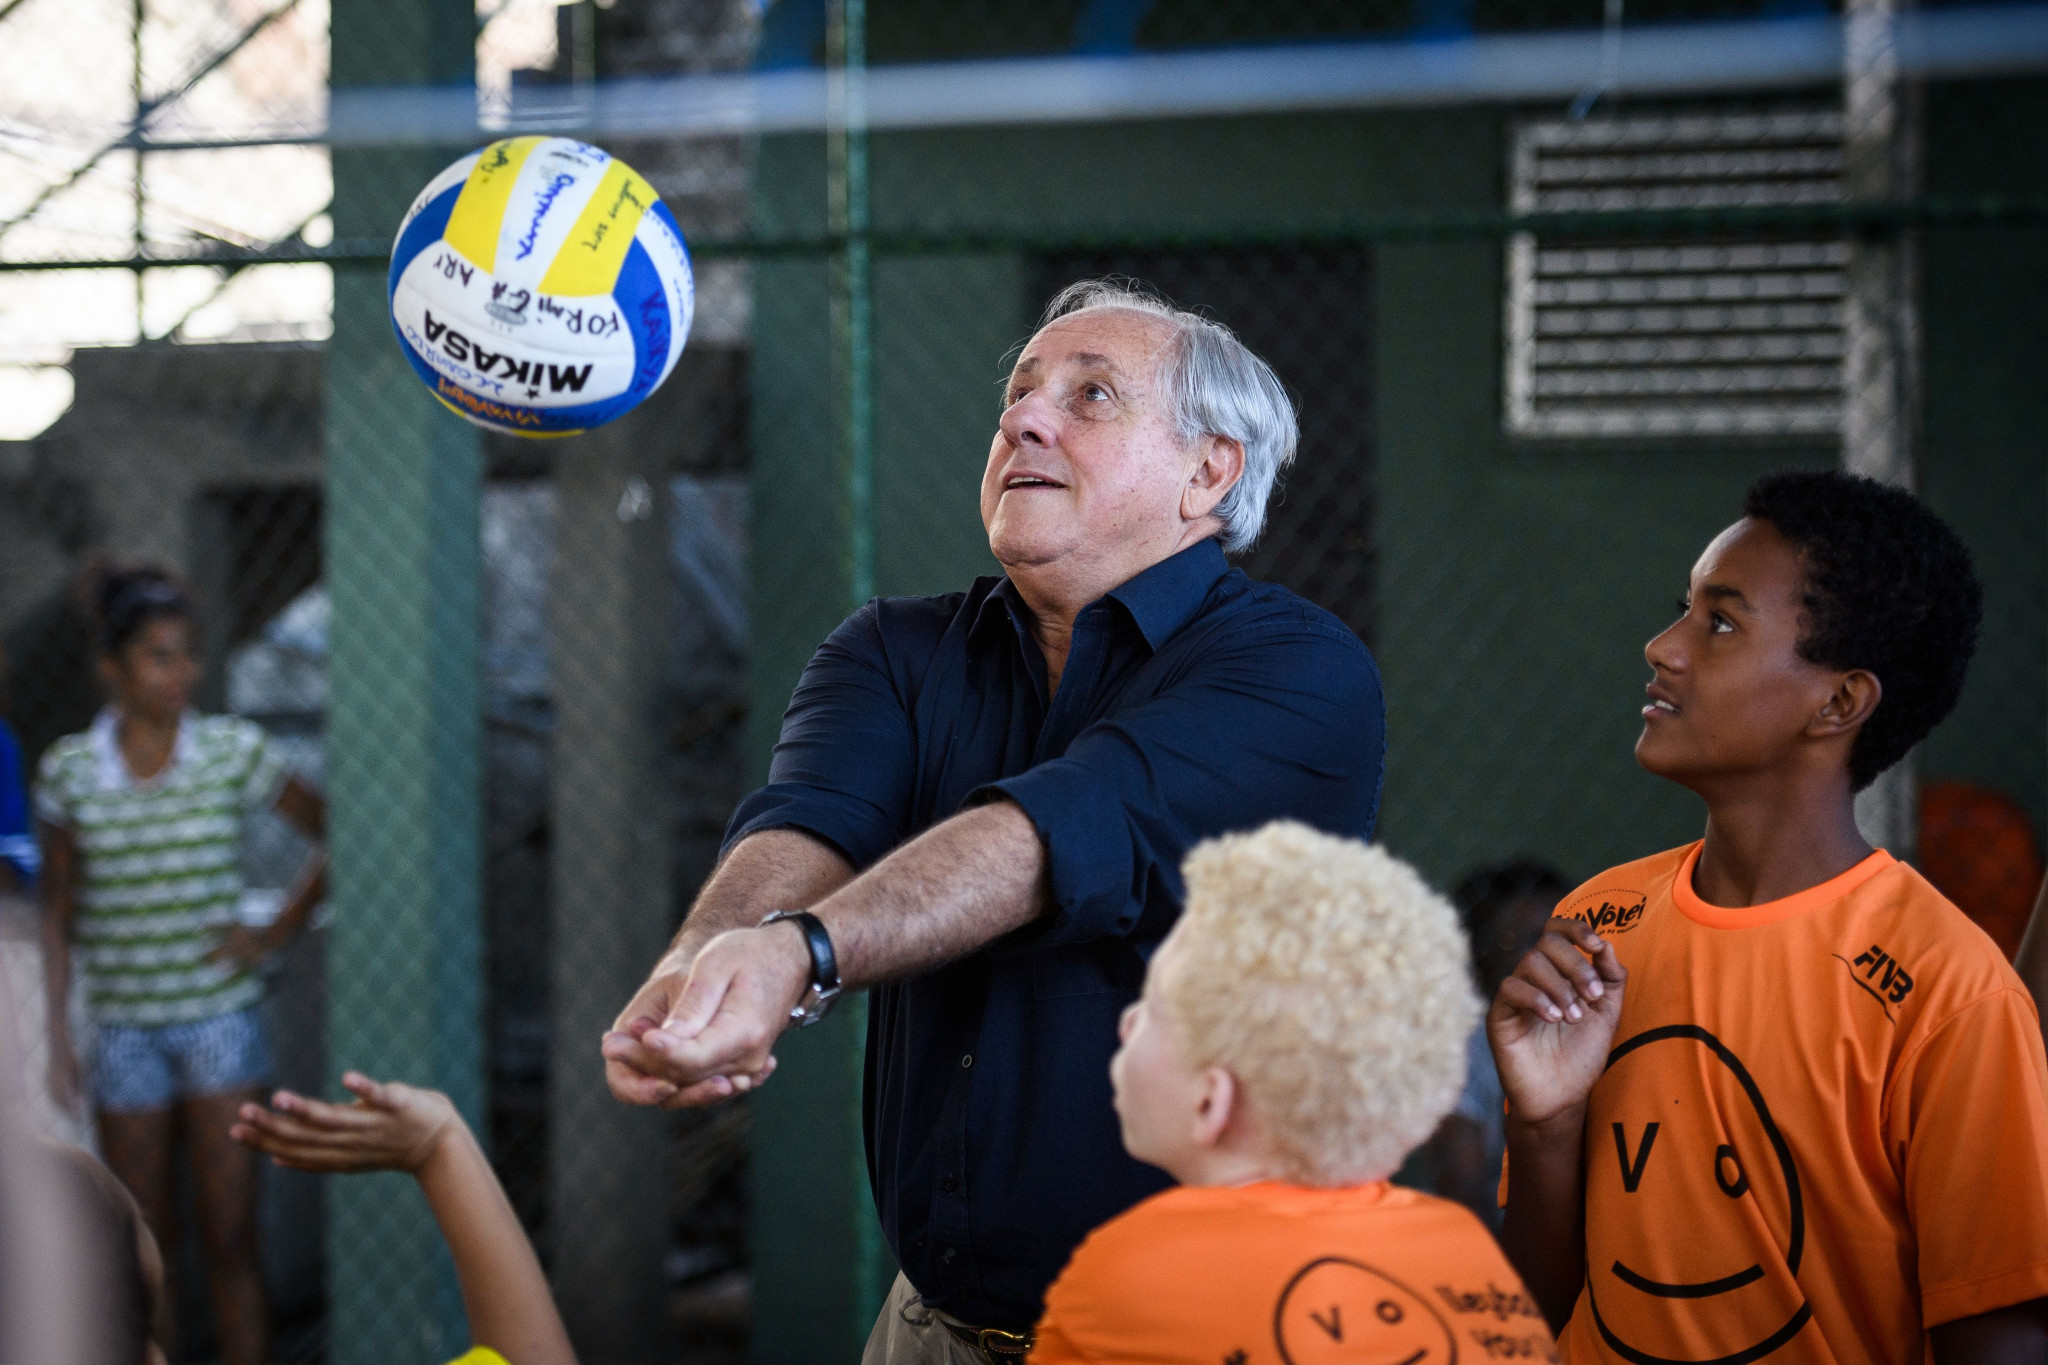 FIVB President Graça pledges to increase global reach of volleyball